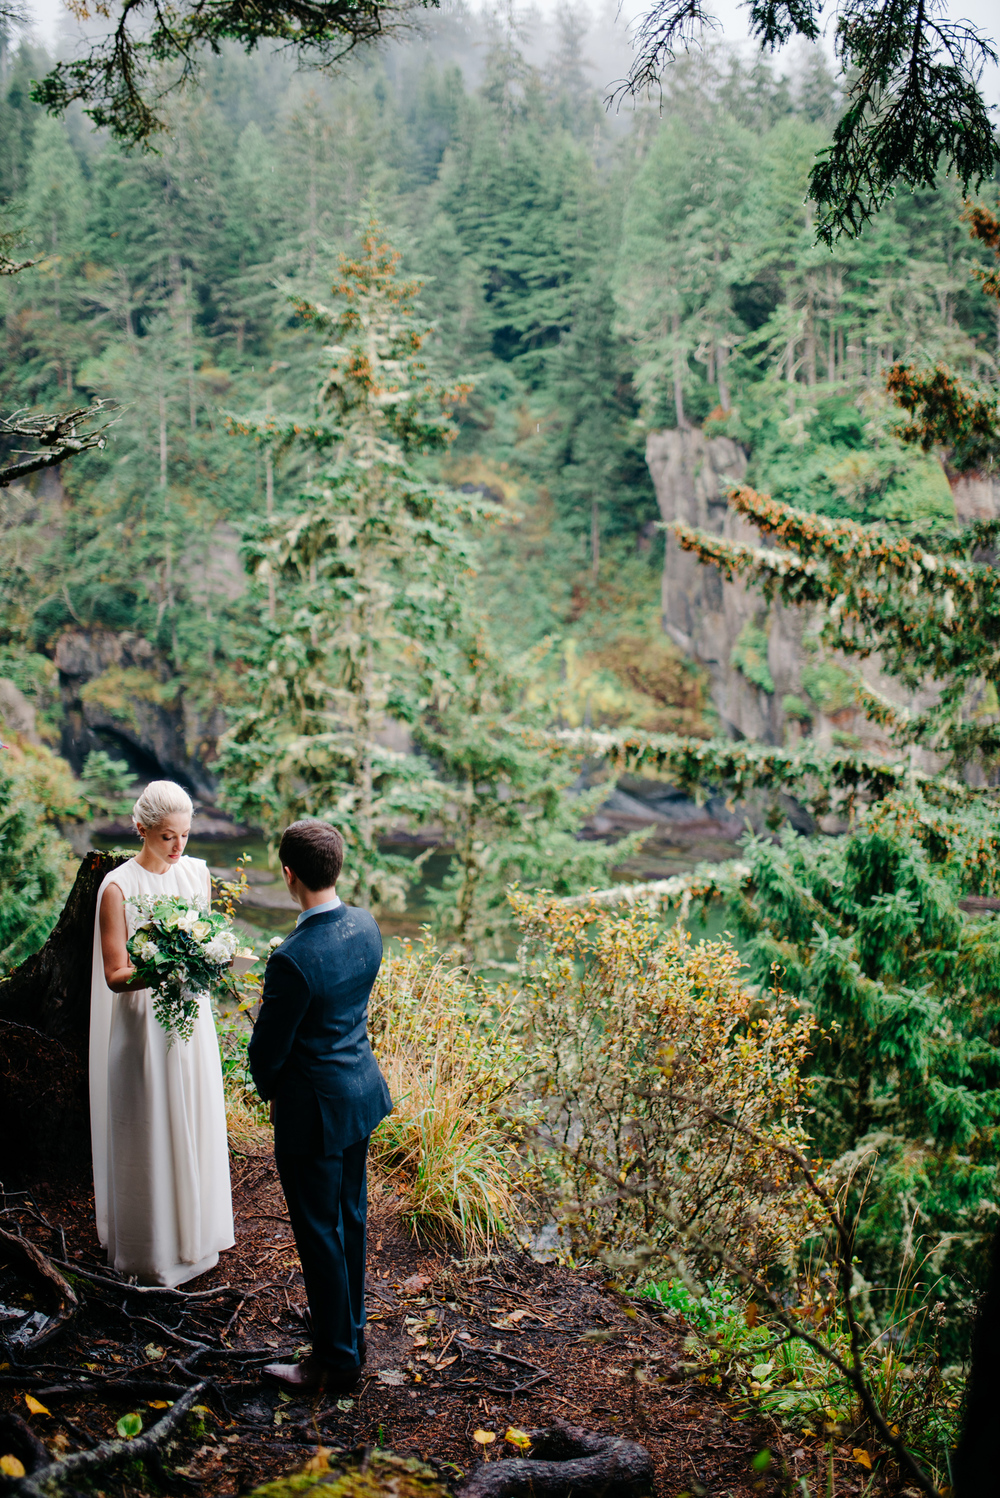 011-pnw-coastal-elopement-at-cape-flattery-by-seattle-wedding-photographer-ryan-flynn.jpg